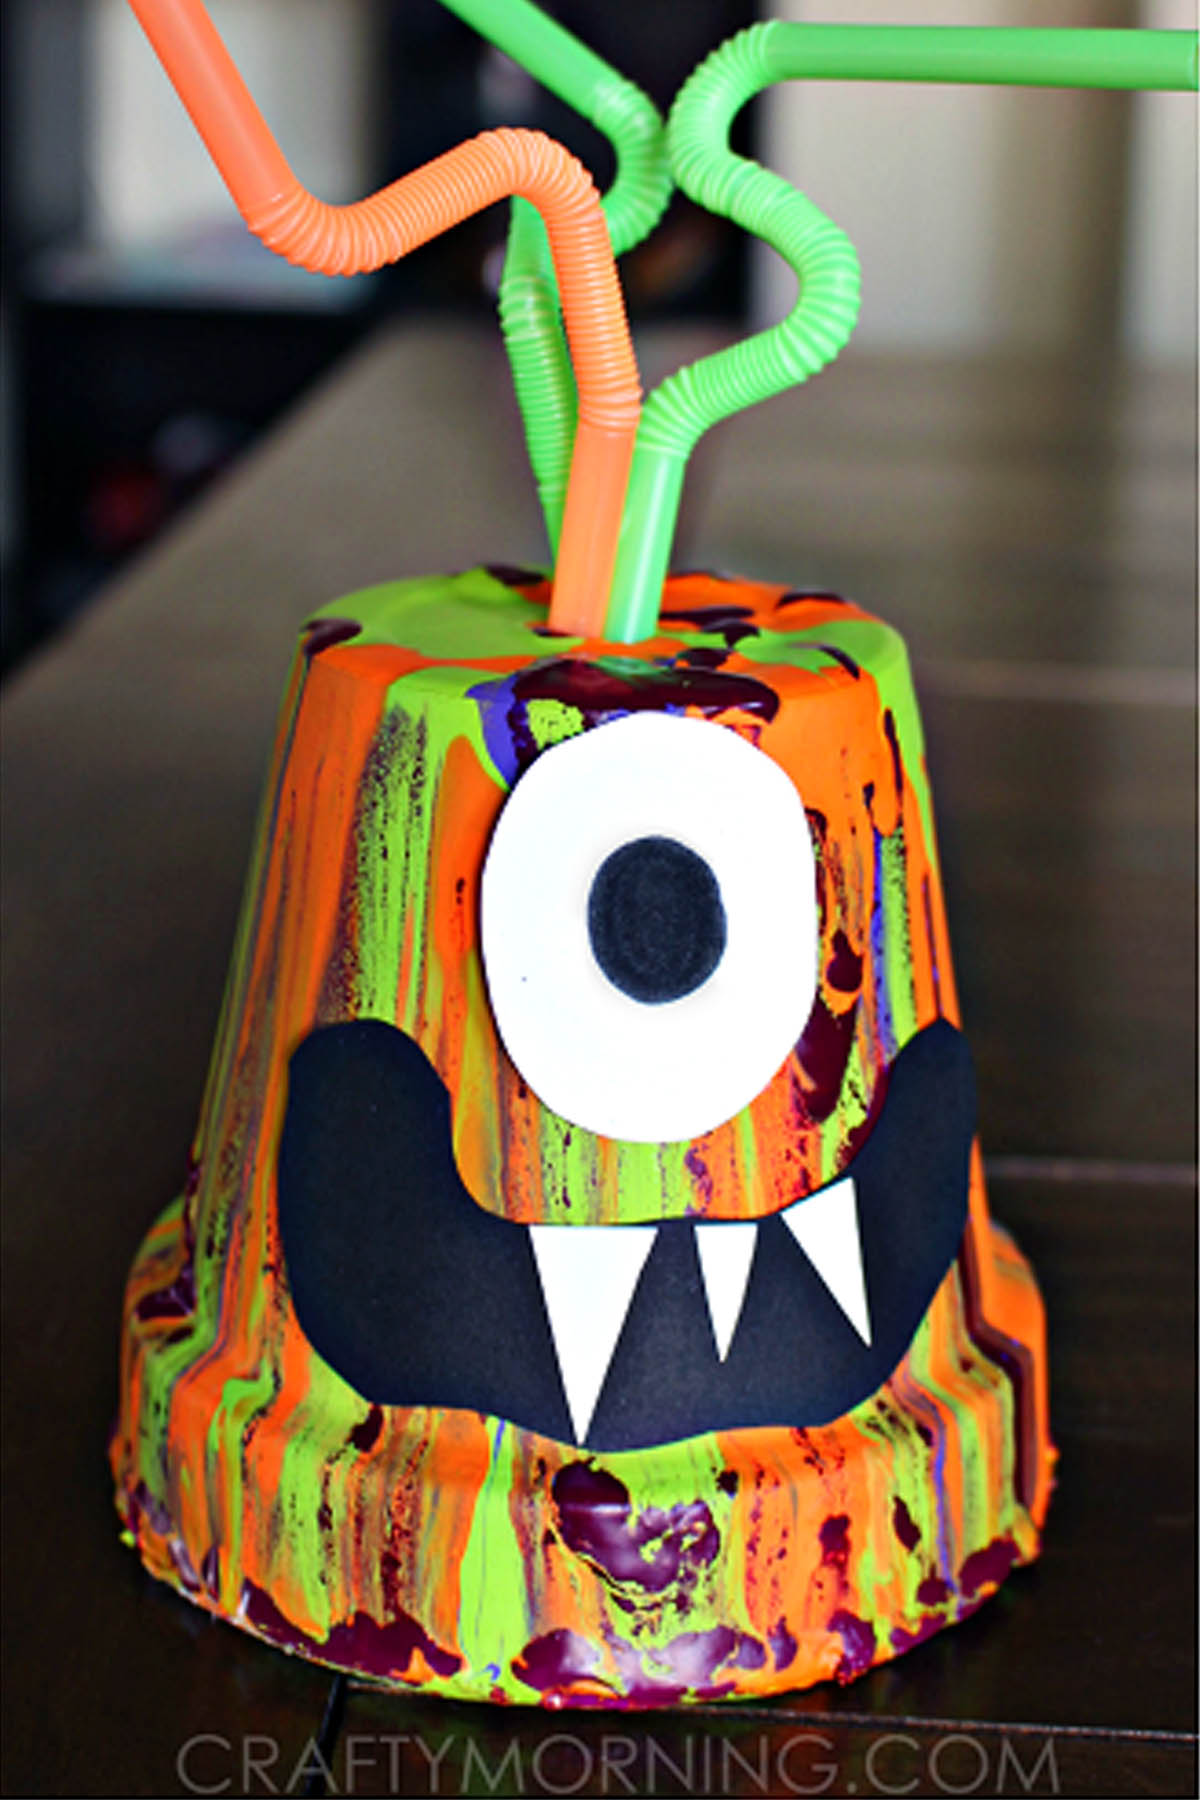 25 Spooktacular Halloween Crafts for Kids of All Ages. Grab a handful of paper plates and some washable paints and your kids can create a flock of bats, a bony skeleton, or a line of grinning jack-o-lanterns. Plastic spoons can become toothy vampires, and cotton balls make for the perfect fluffy ghosts.